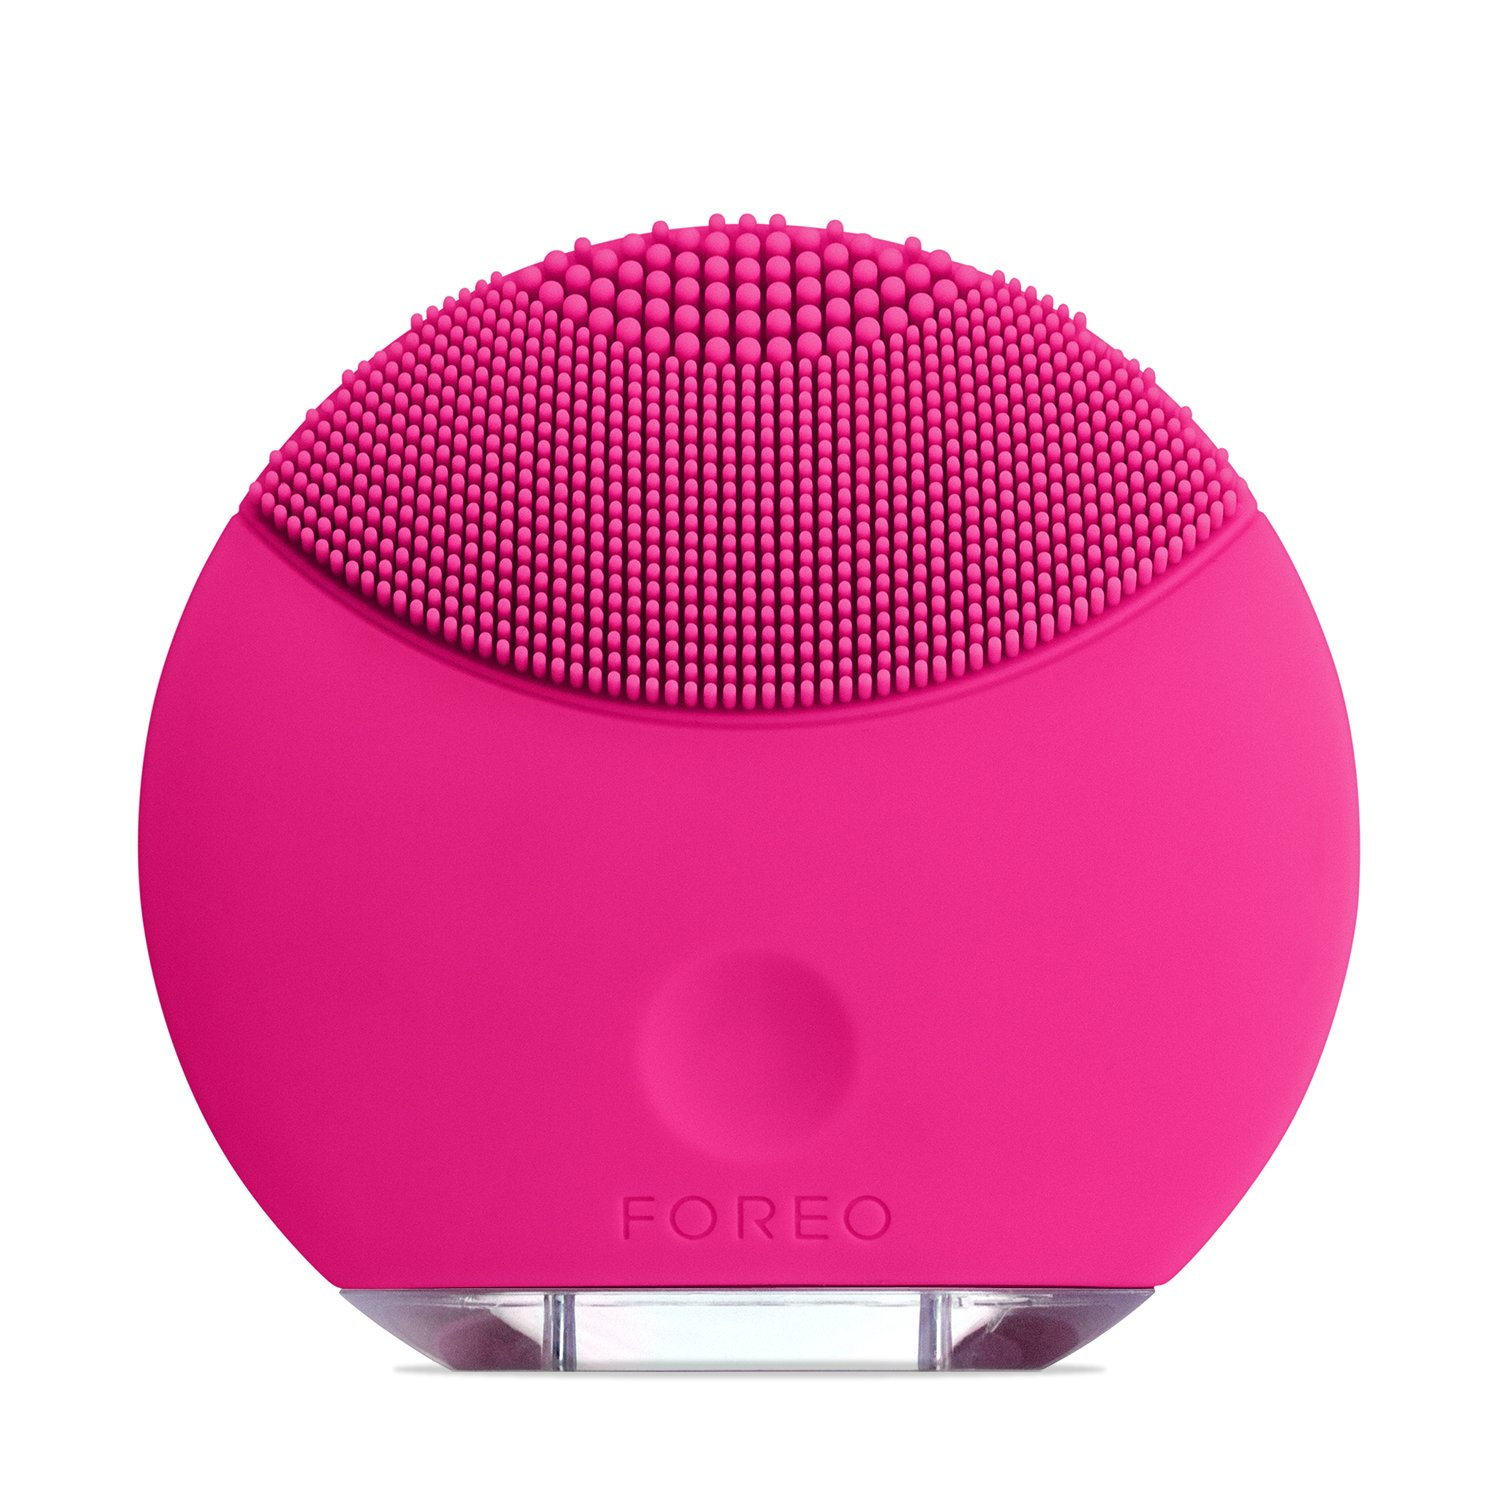 FOREO LUNA mini Silicone Face Brush with Facial Cleansing for All Skin Types